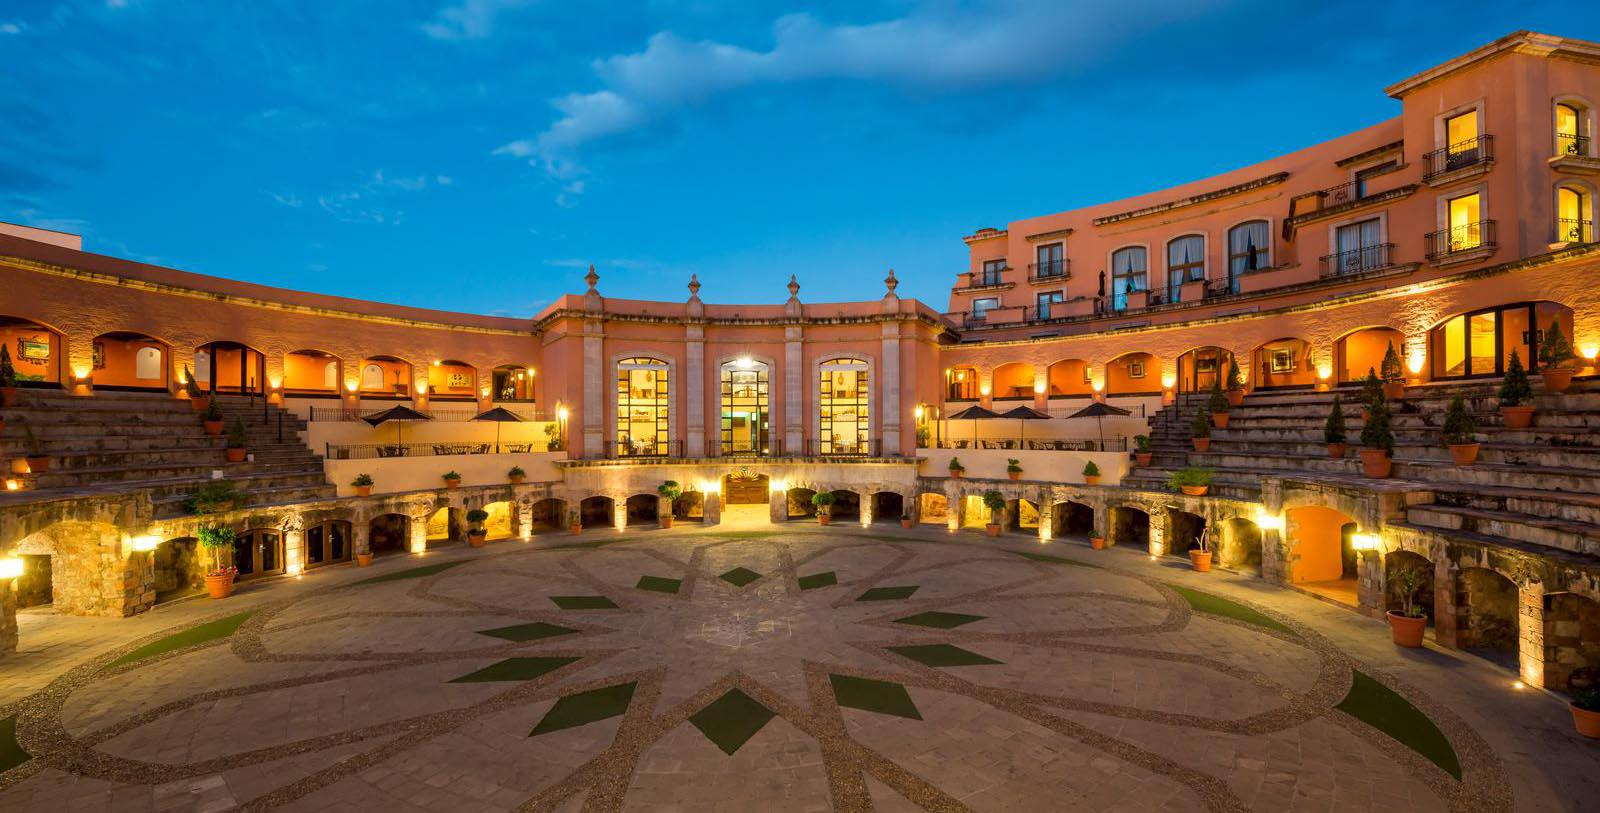 Image of Courtyard Quinta Real Zacatecas, 1866, Member of Historic Hotels Worldwide, in Zacatecas, Mexico, Discover